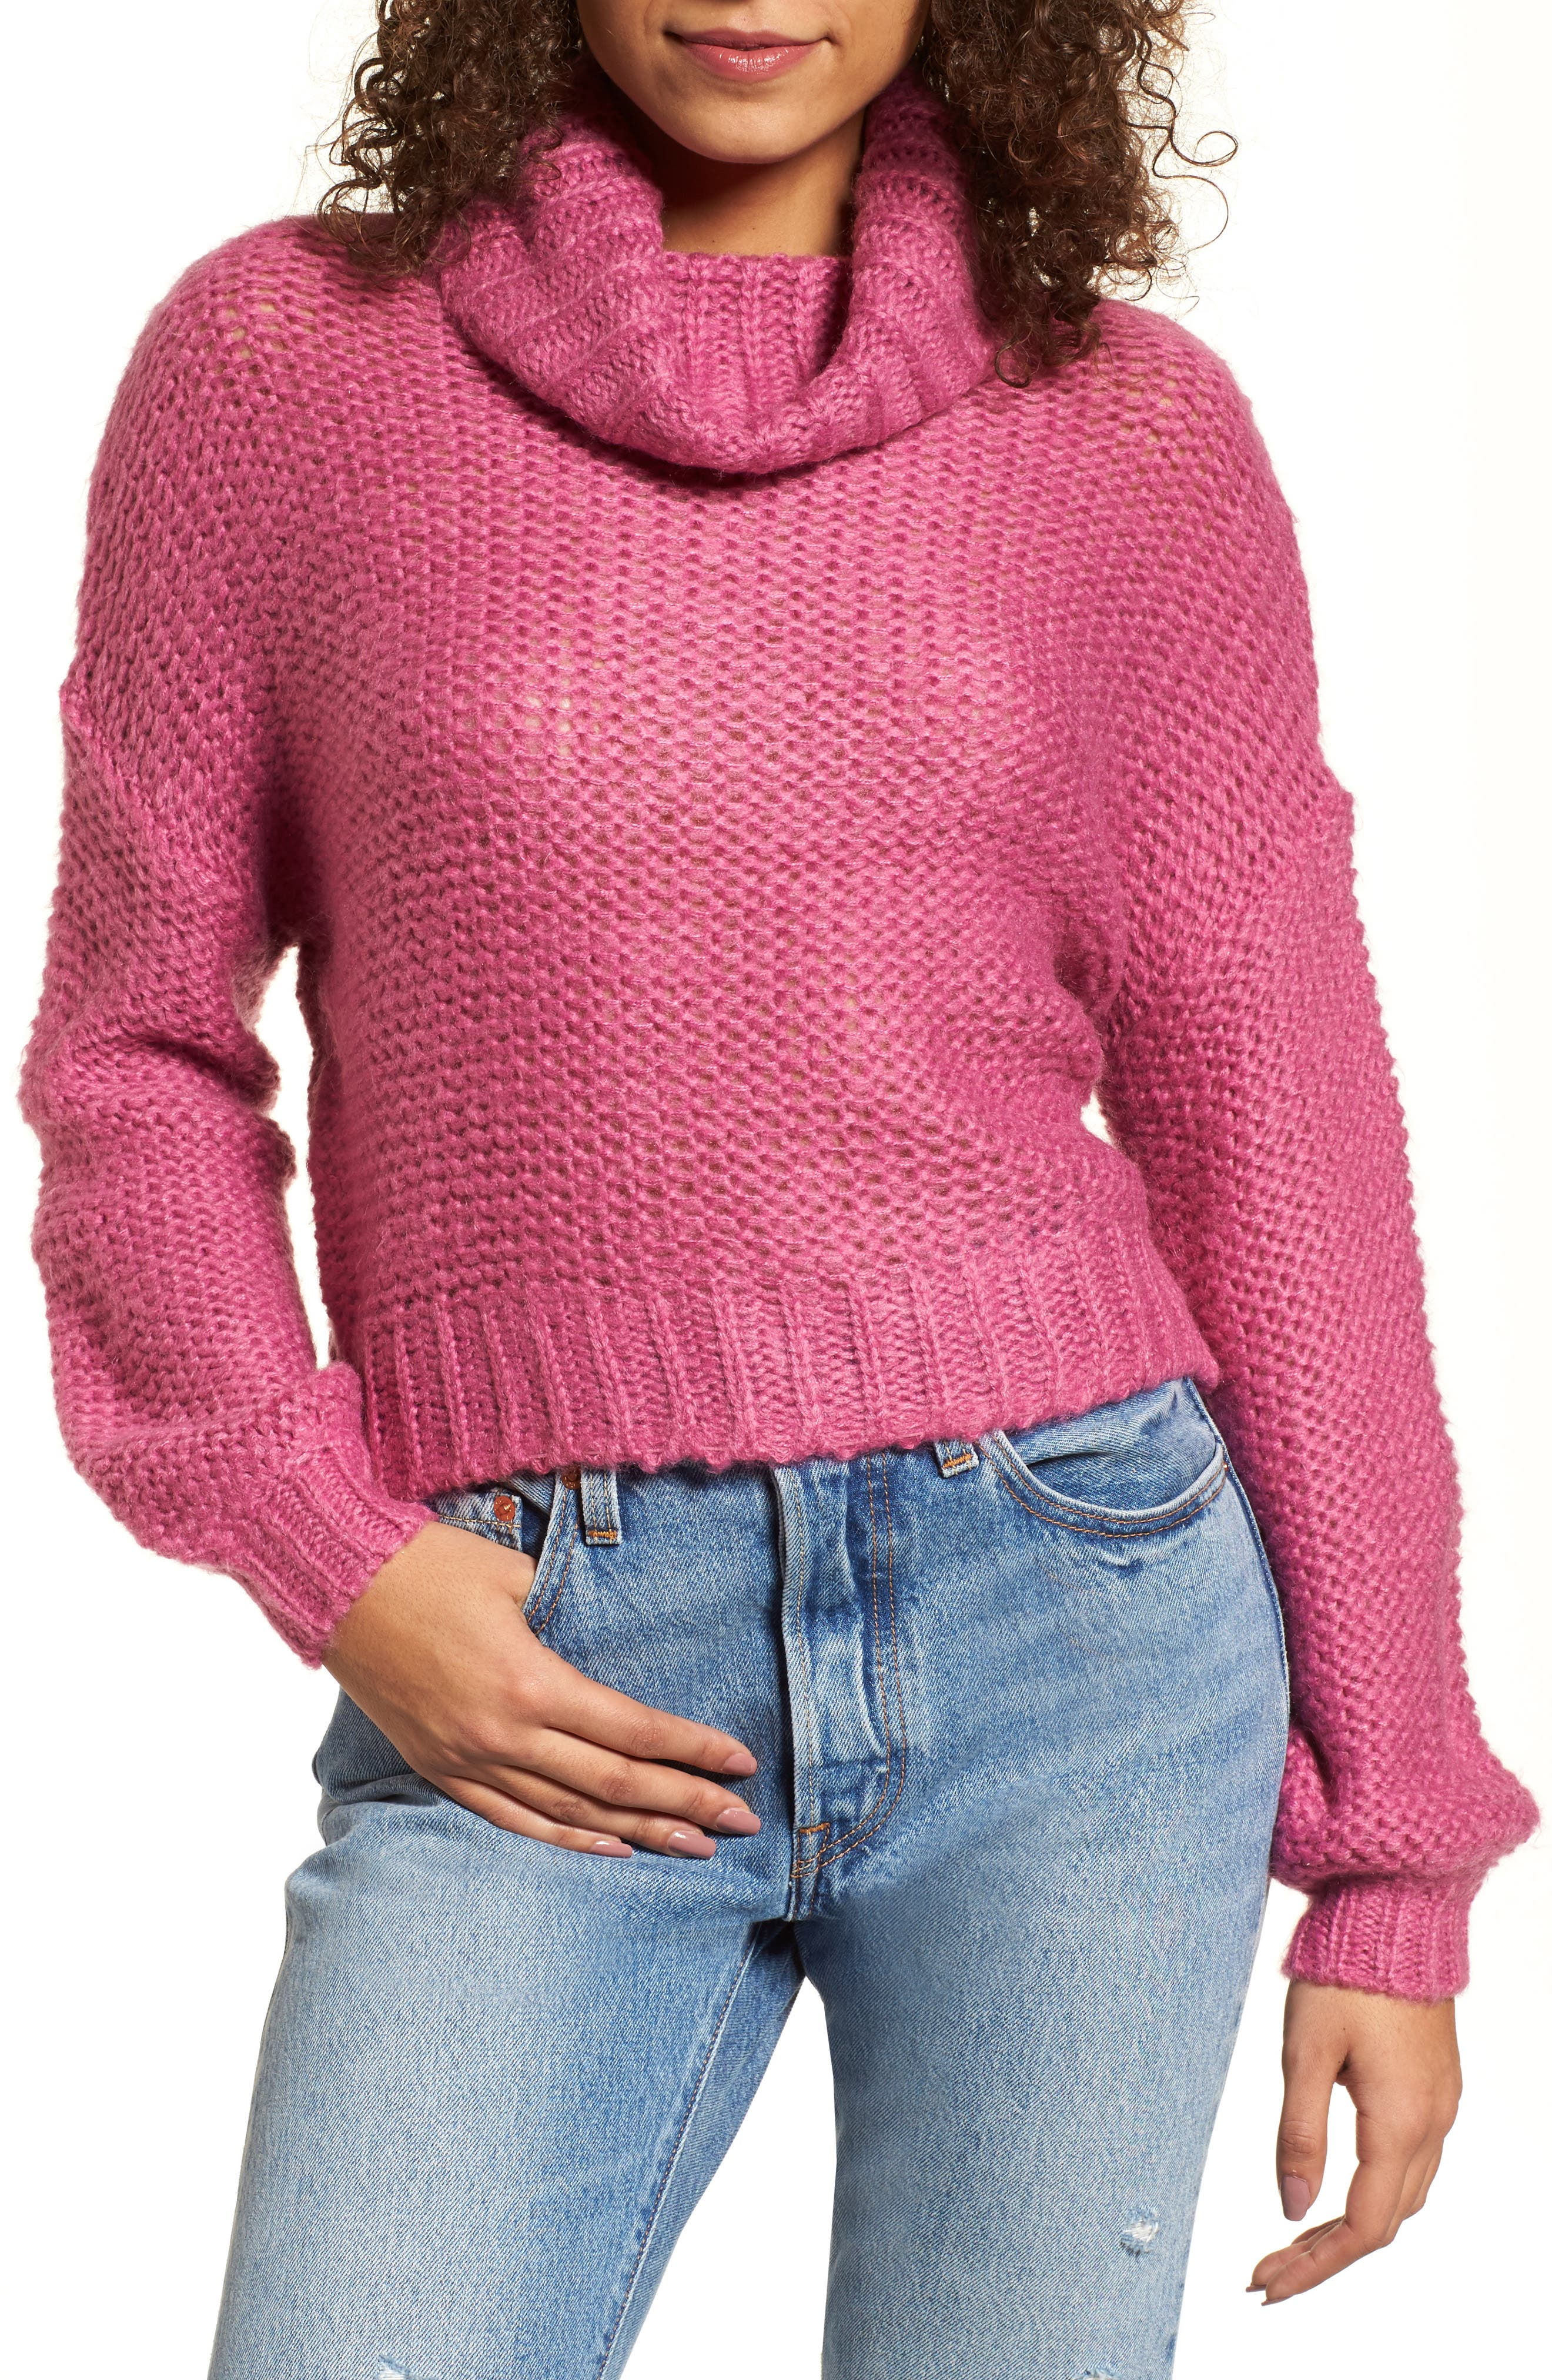 Stay Here Turtleneck Sweater,                             Main thumbnail 2, color,